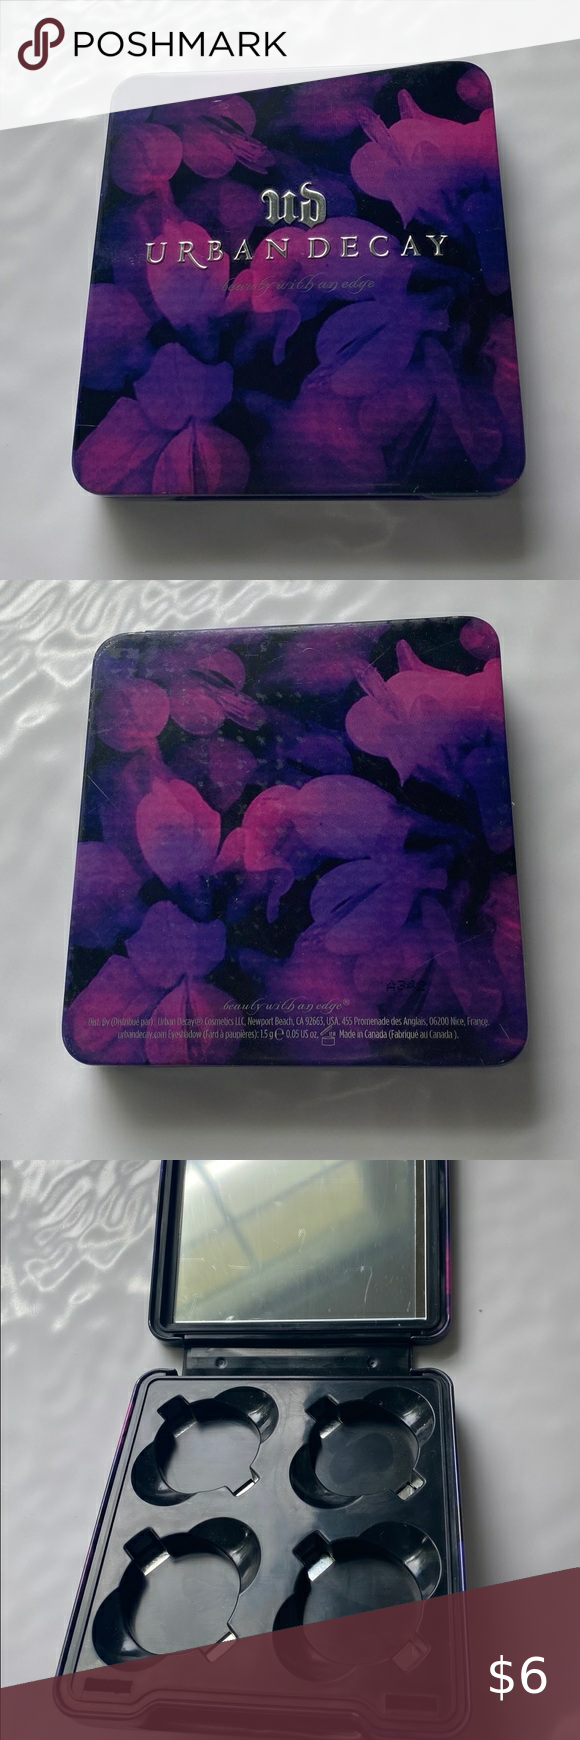 Urban Decay 4pan Empty Eyeshadow Palette Build your own